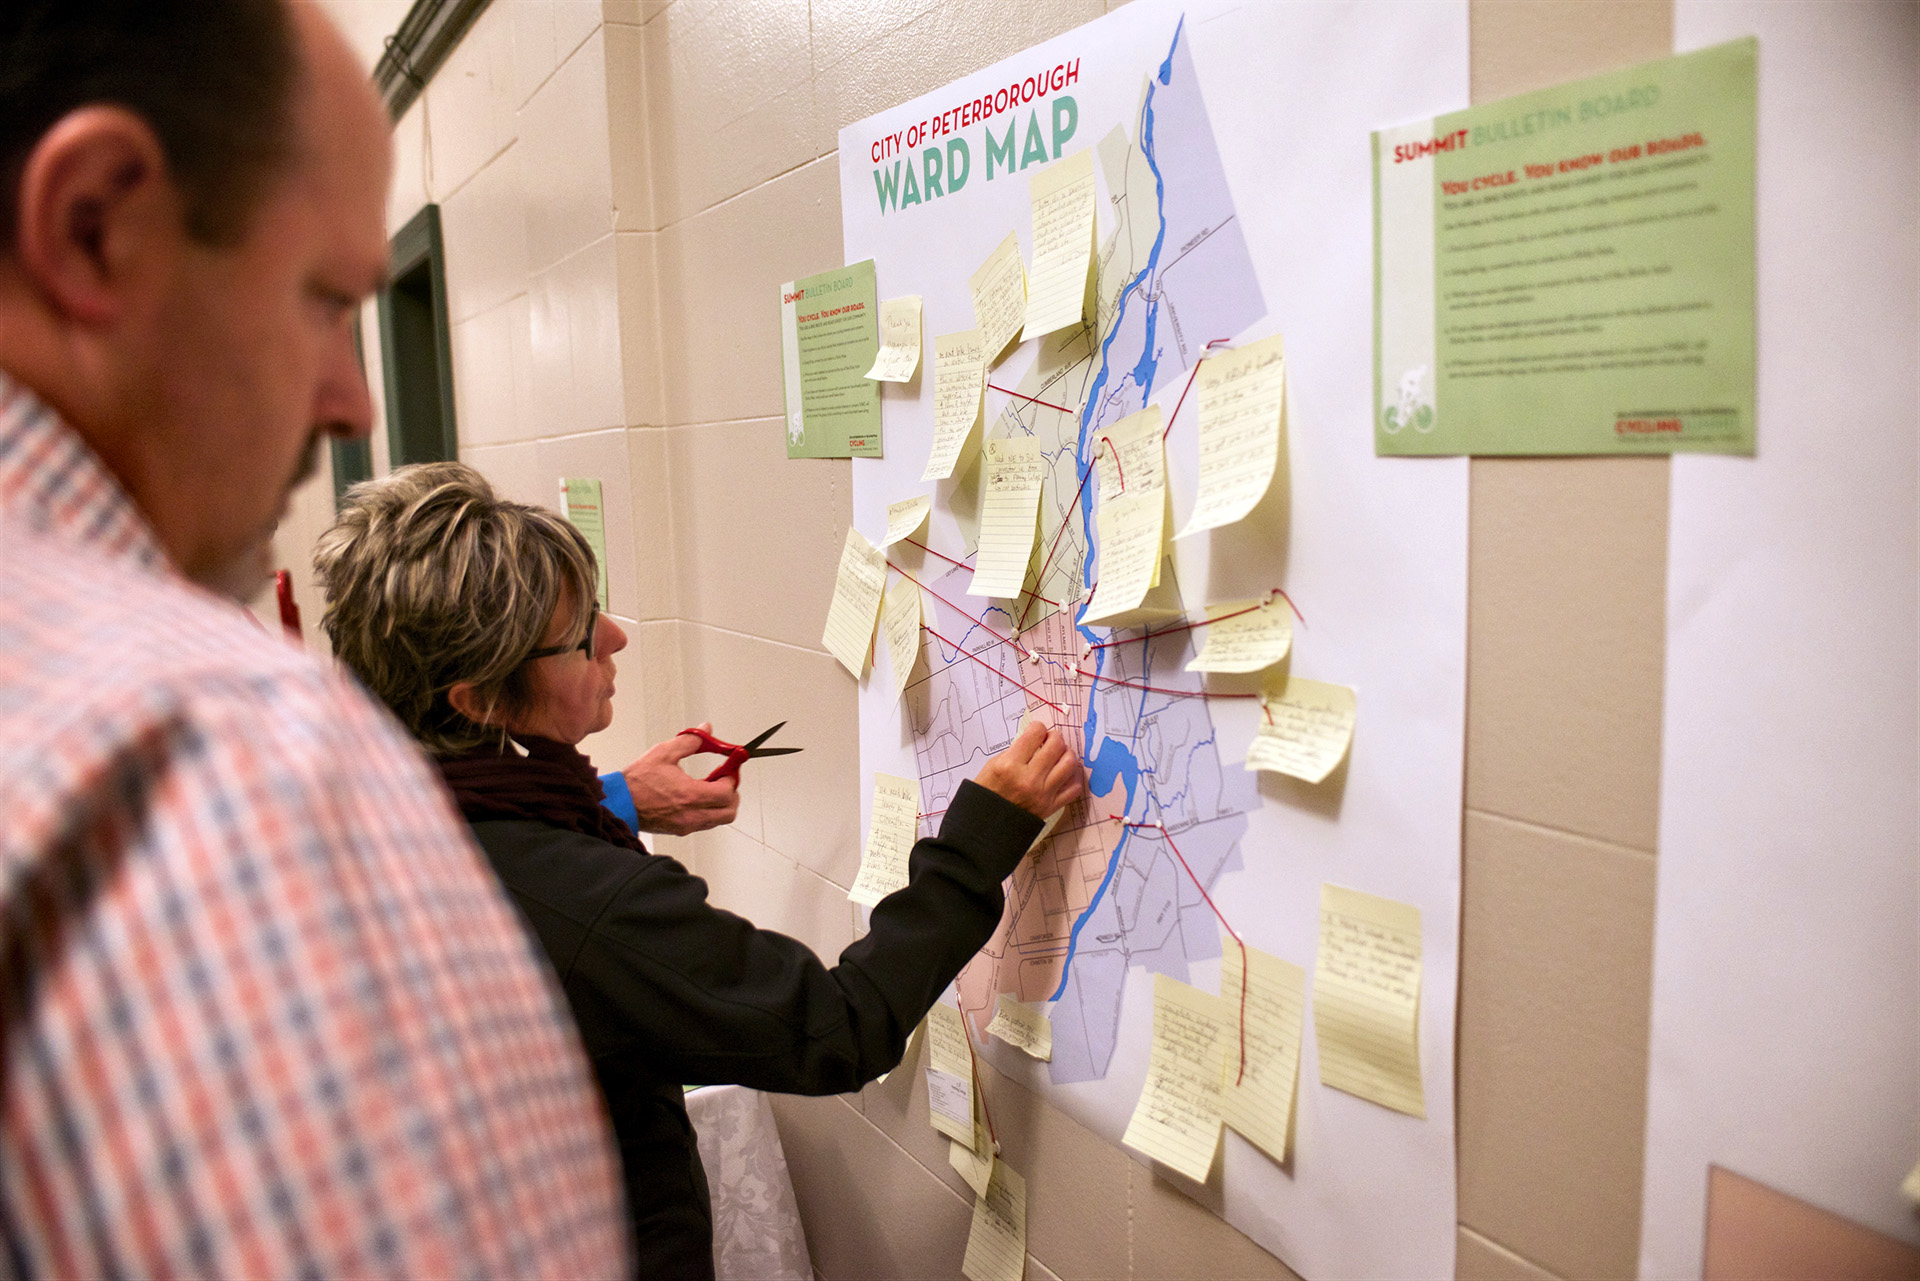 SUMMIT BULLETIN BOARD LISTS AREAS OF INTEREST AND CONCERN